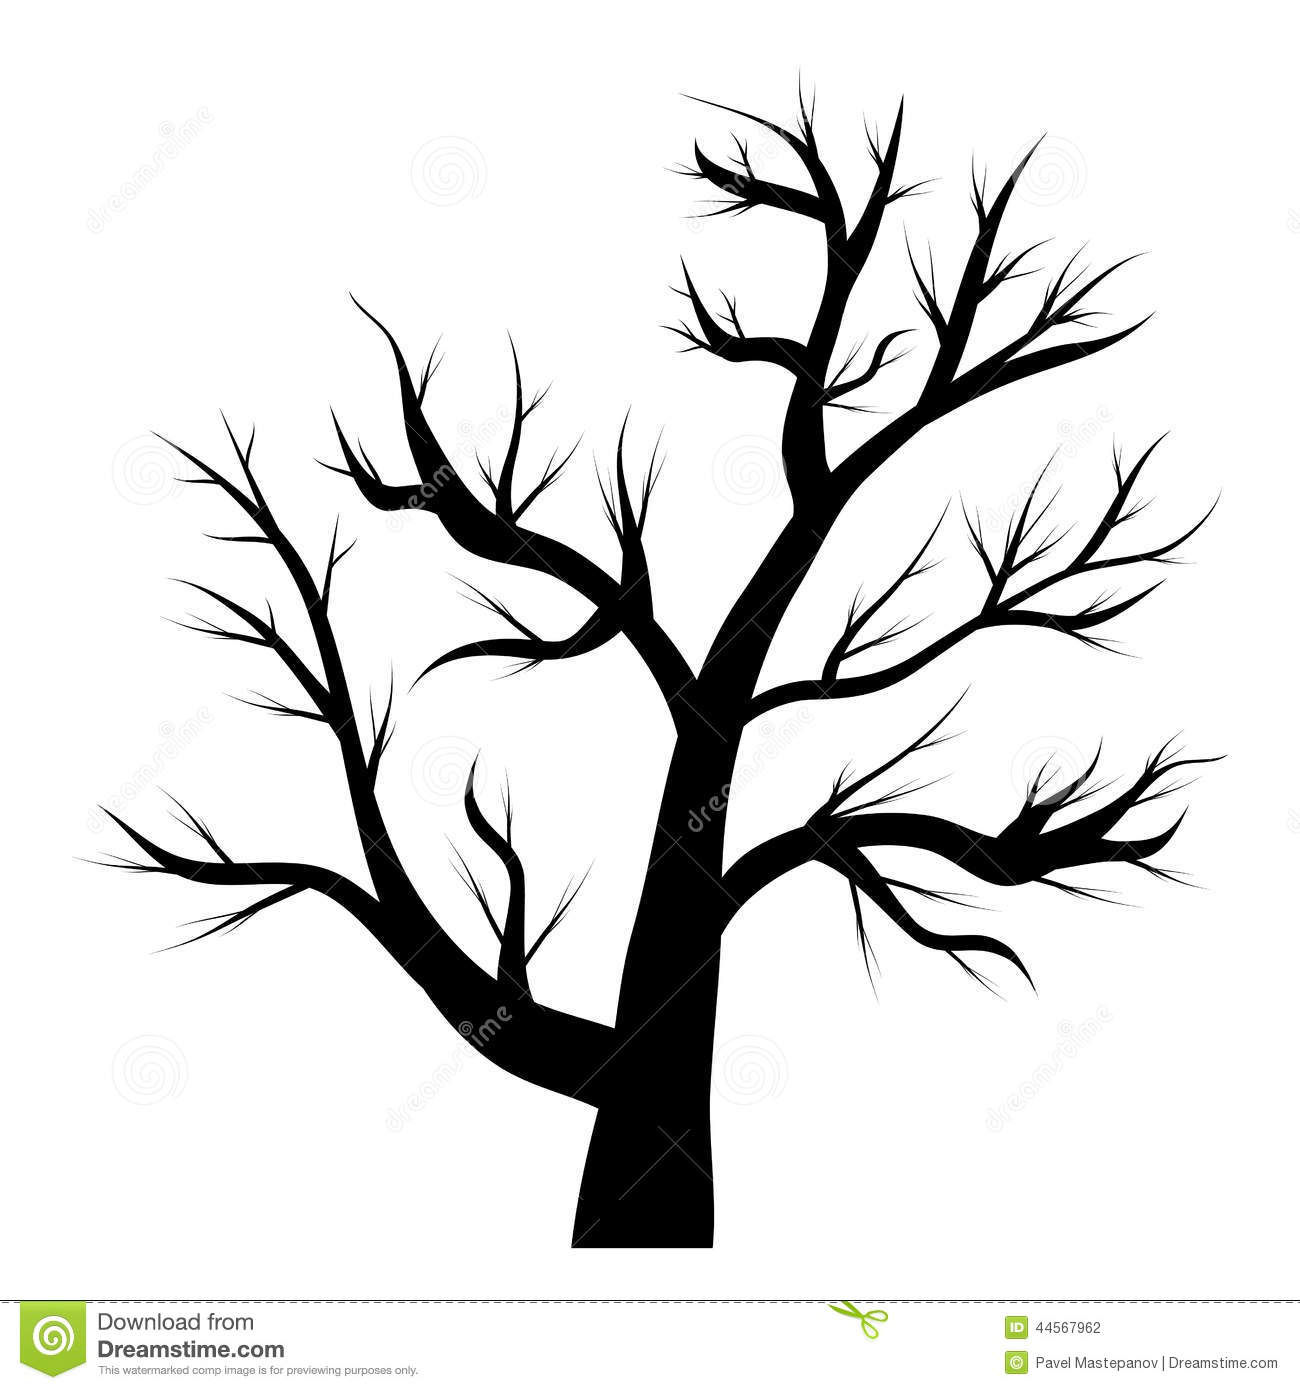 Arbre sans feuilles illustration stock illustration du nature 44567962 - Dessin arbre sans feuille ...